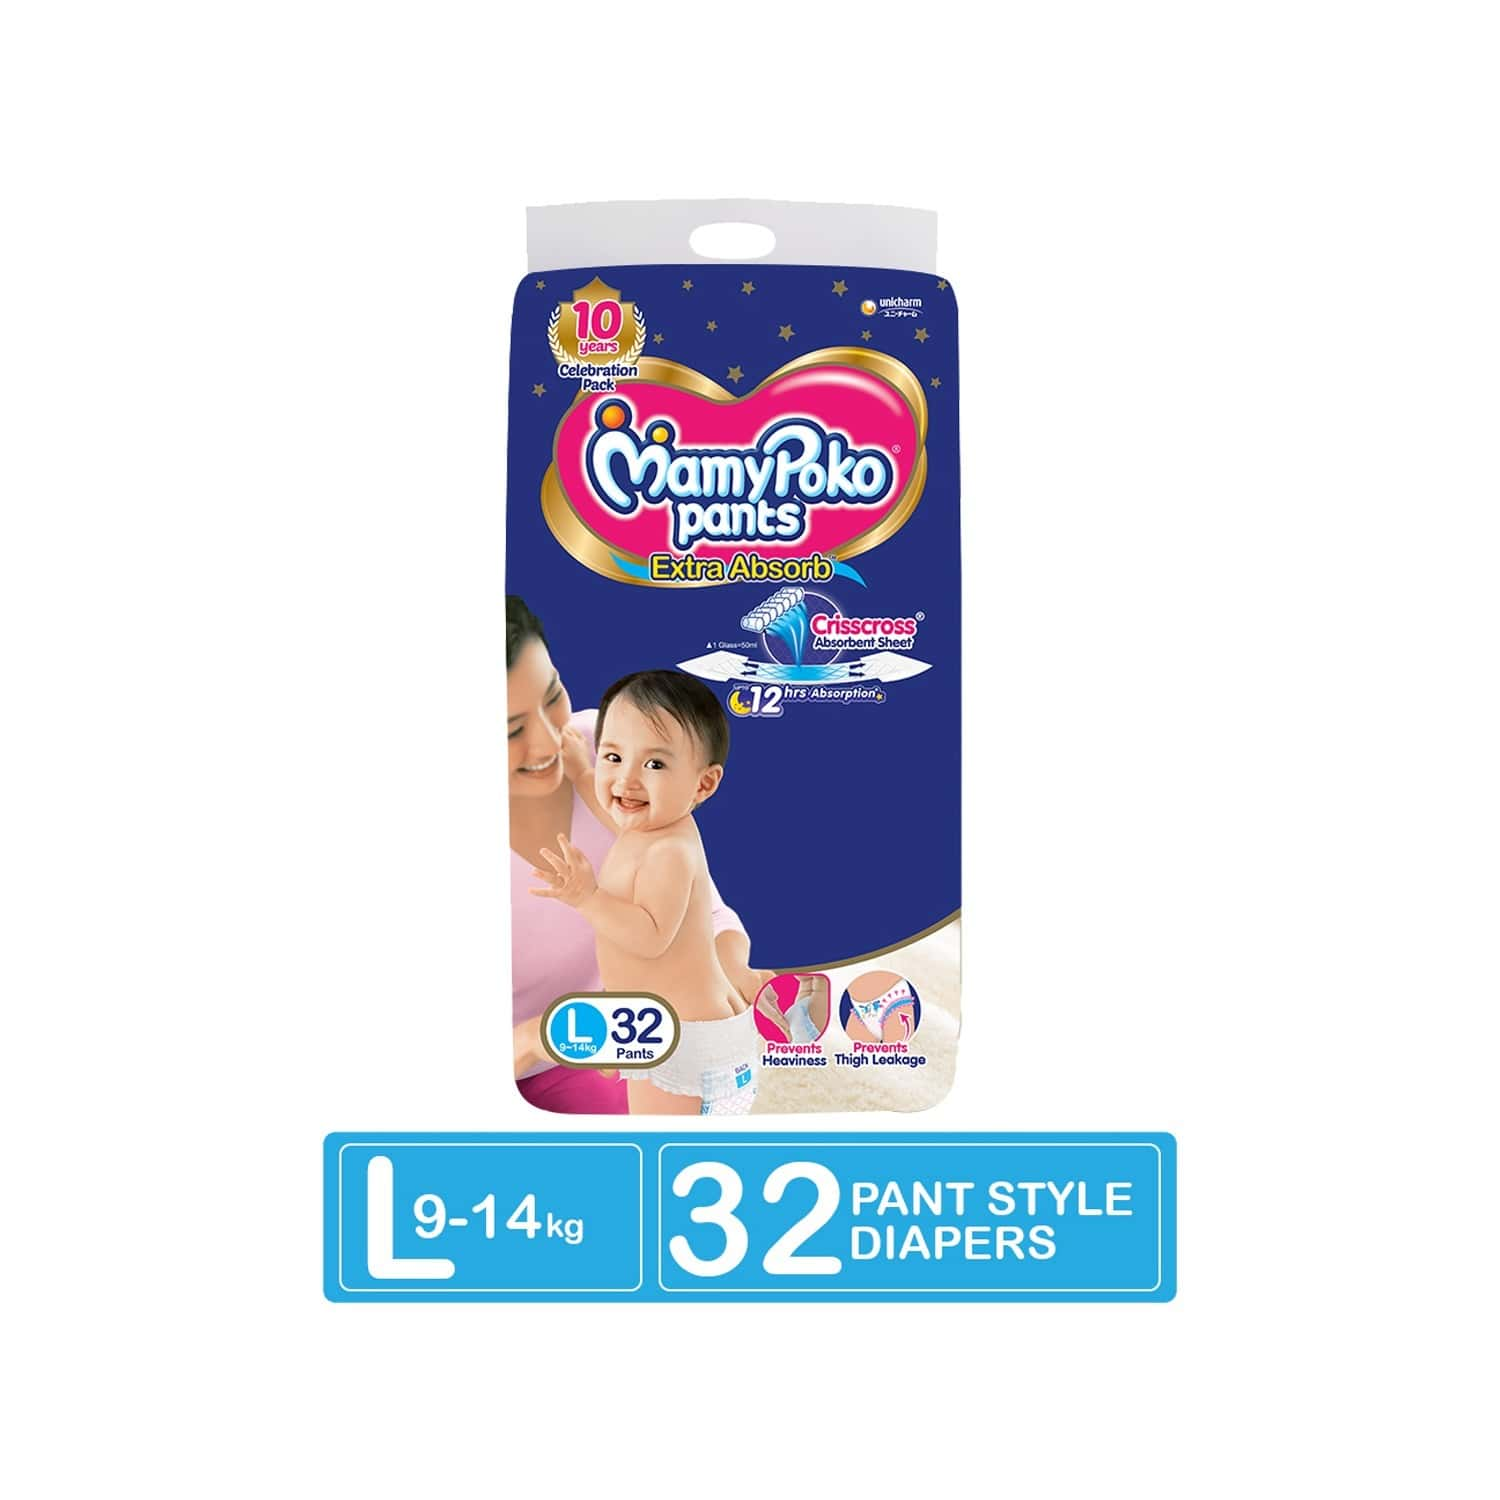 Mamypoko Pants Extra Absorb Diaper - Large Size, Pack Of 32 Diapers